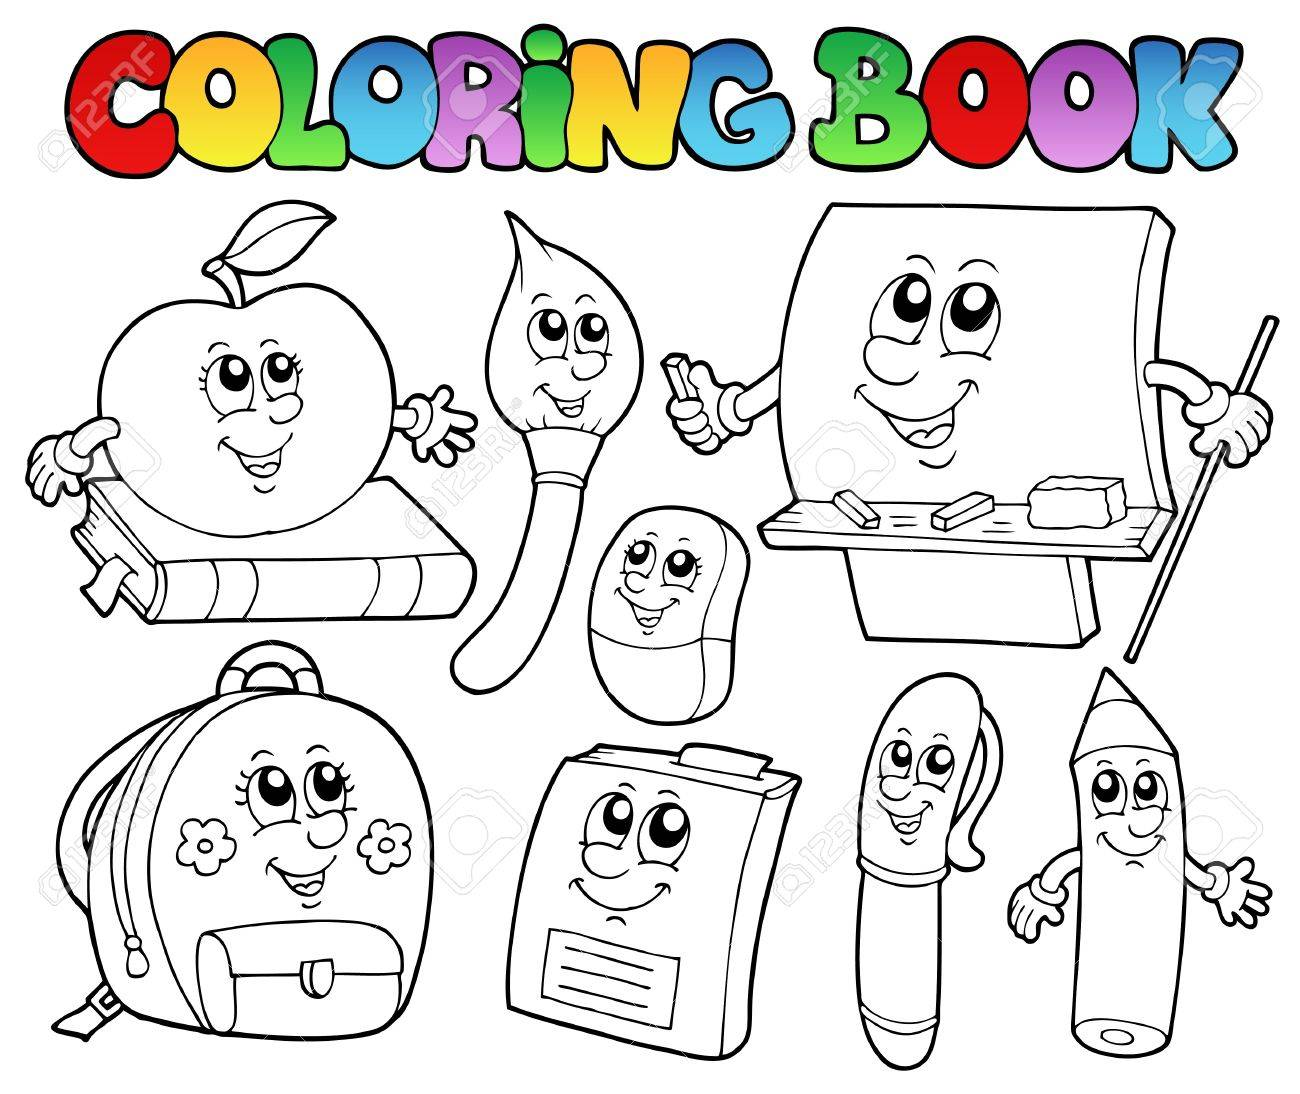 Coloring book school - Coloring Book School Cartoons 5 Stock Vector 10354151